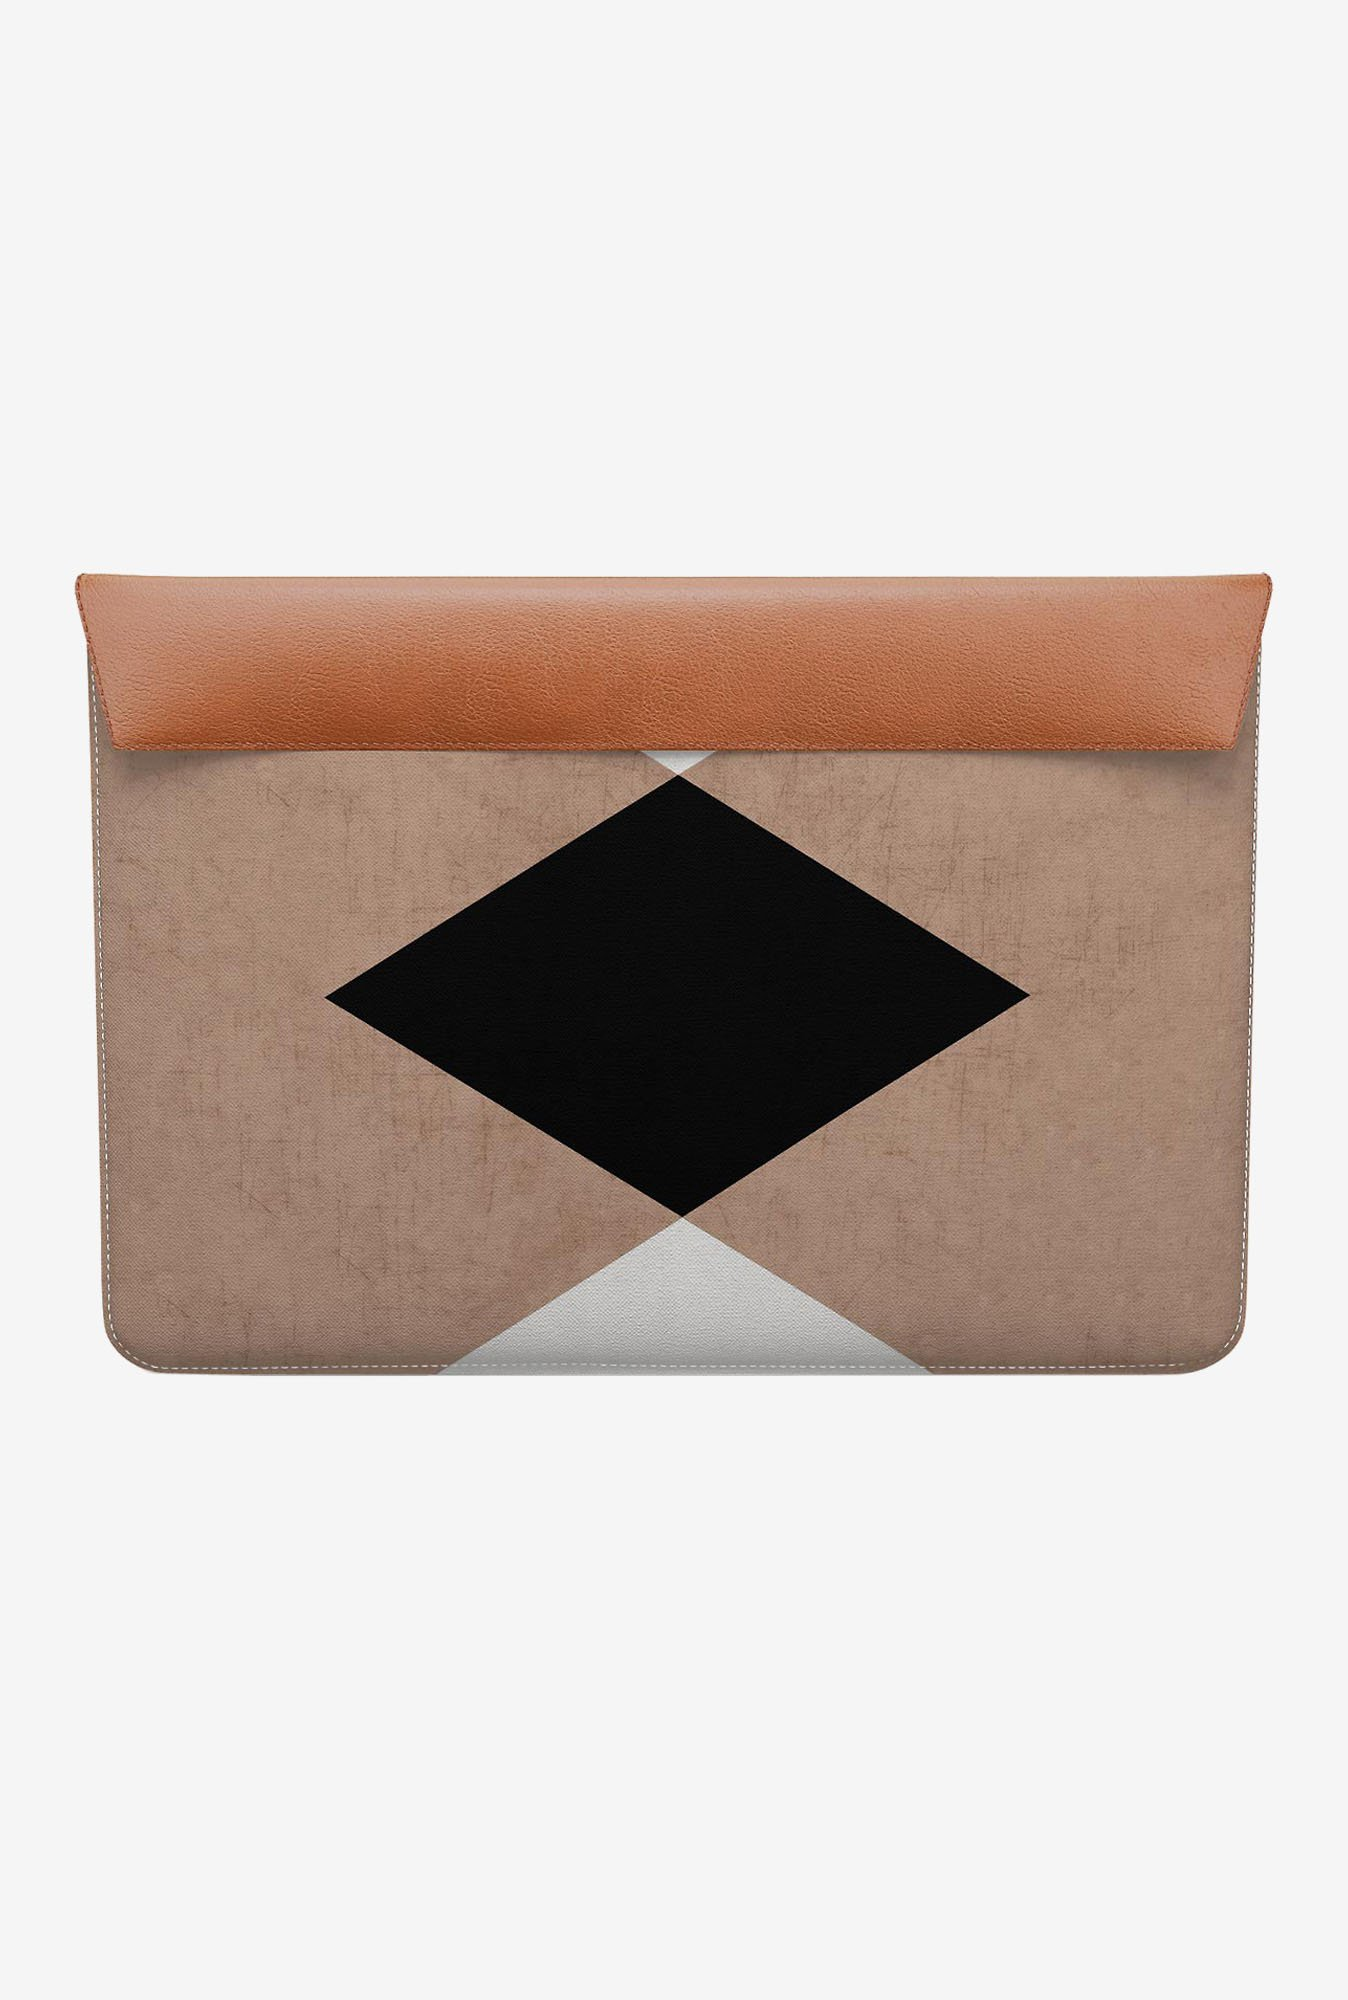 DailyObjects Triangles MacBook Pro 13 Envelope Sleeve